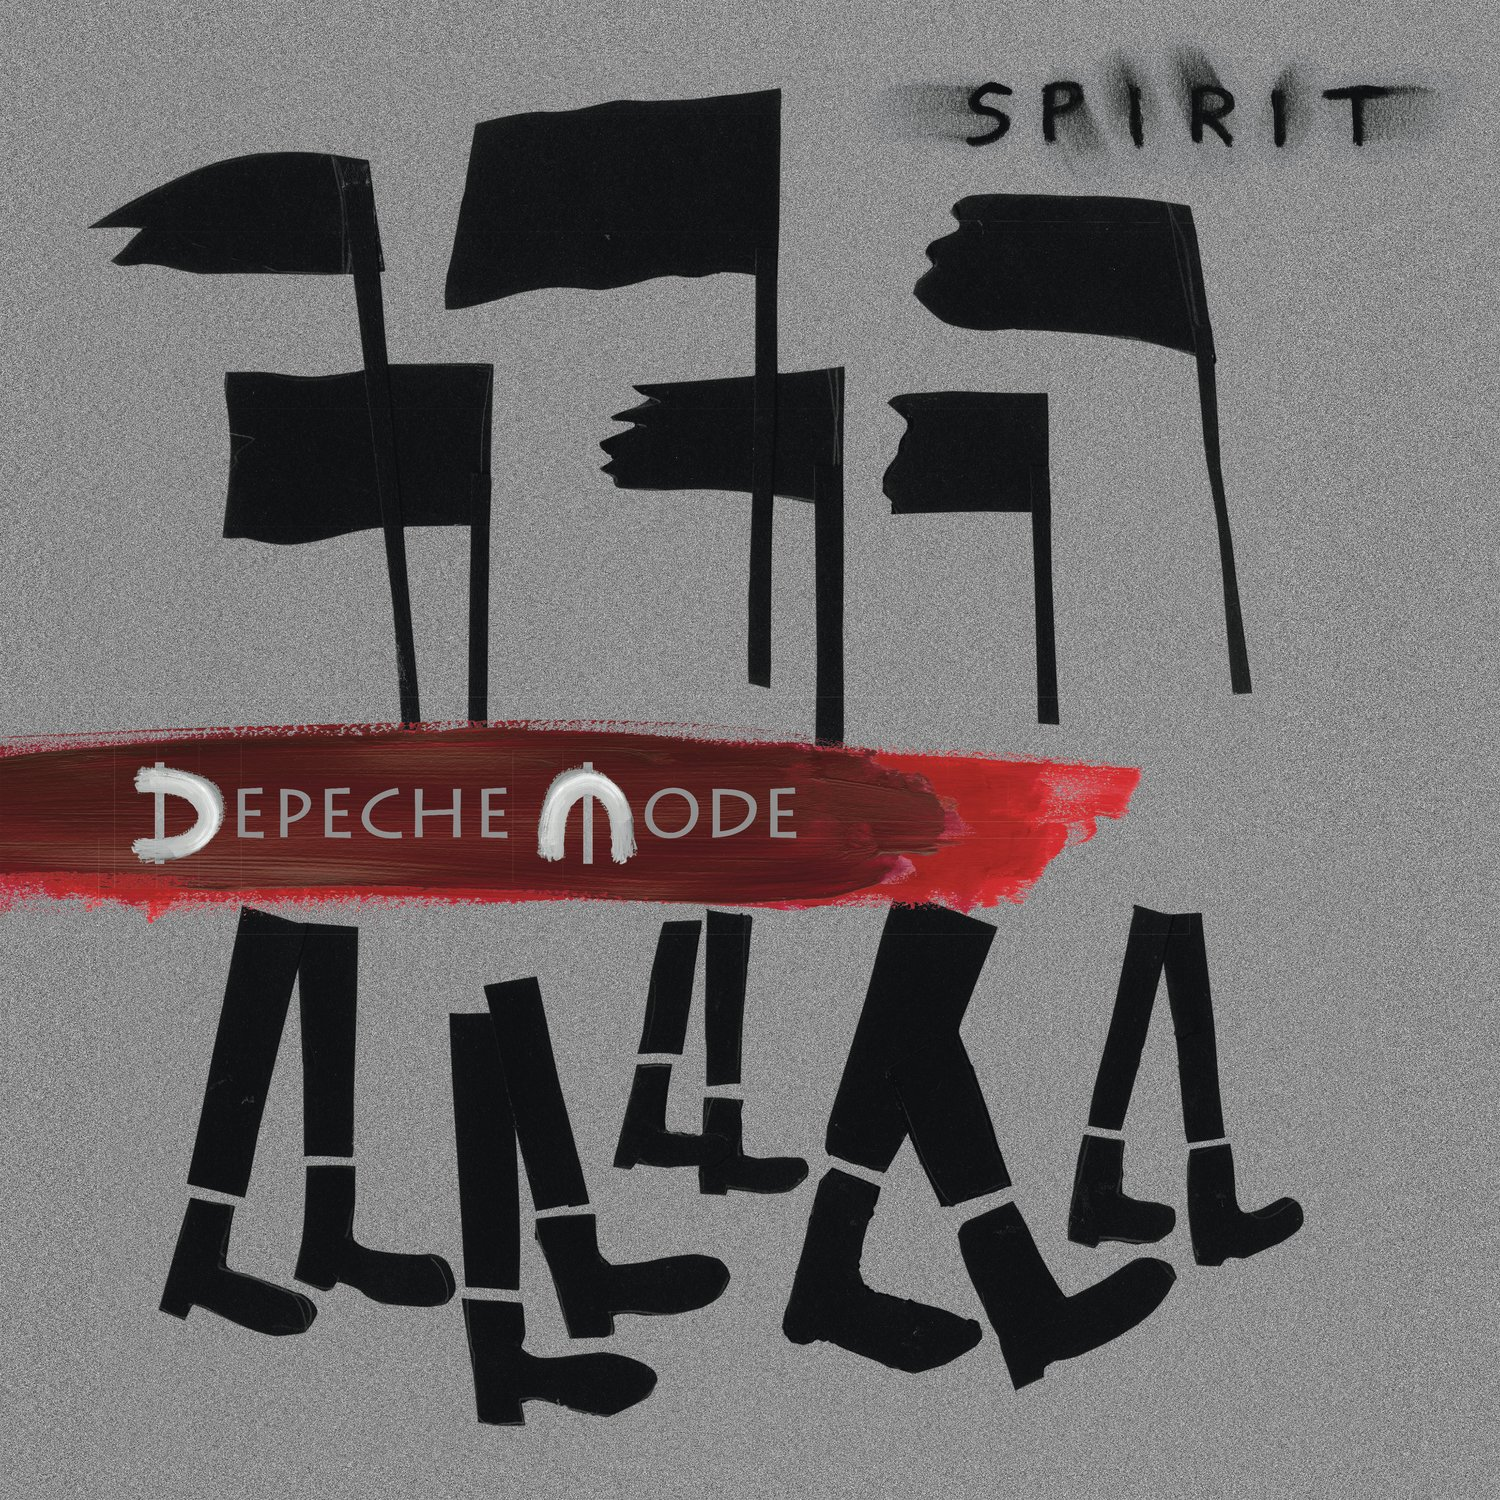 Резултат с изображение за depeche mode spirit